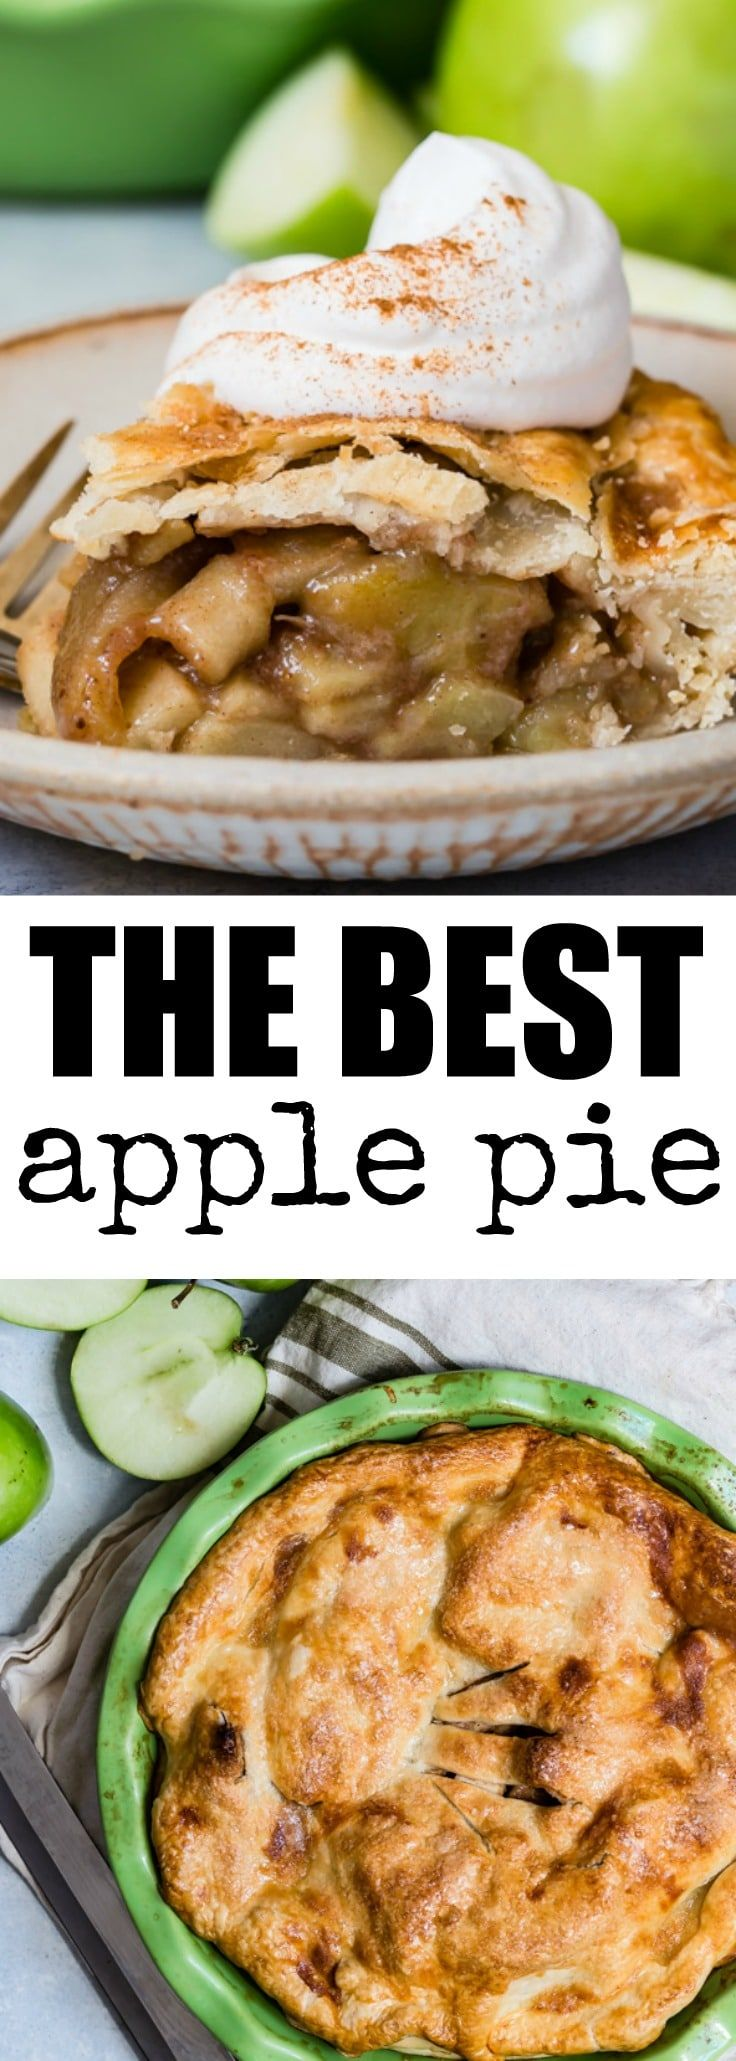 The best Apple Pie is made from simple, delicious ingredients and is ready in just one hour. Buy a pie crust or use my easy homemade pie crust recipe!